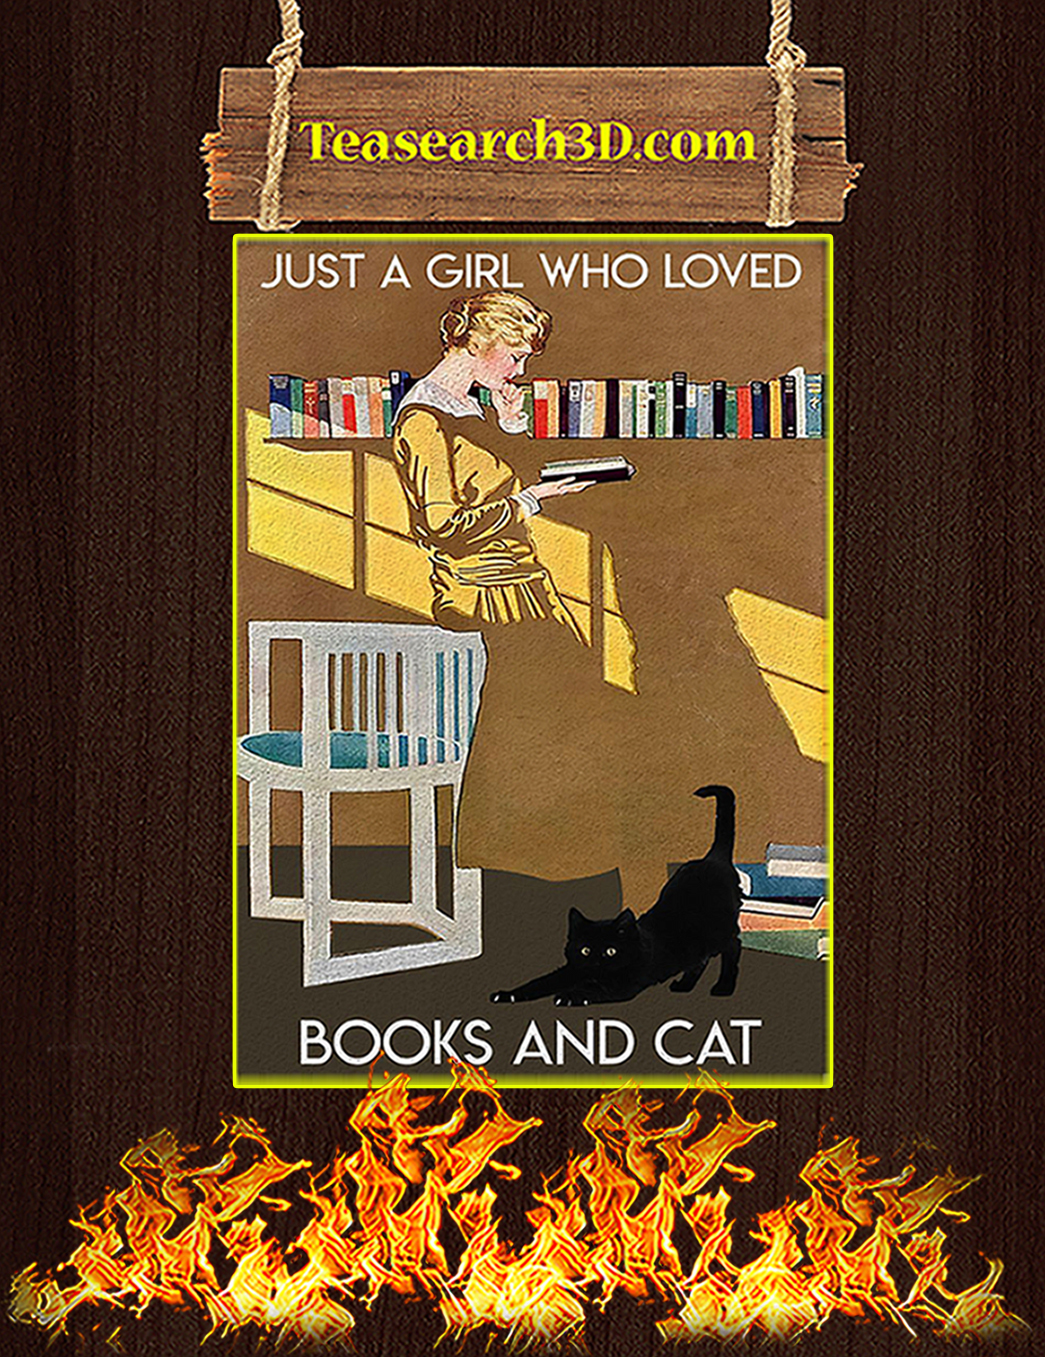 Just a girl who loved books and cat poster A1